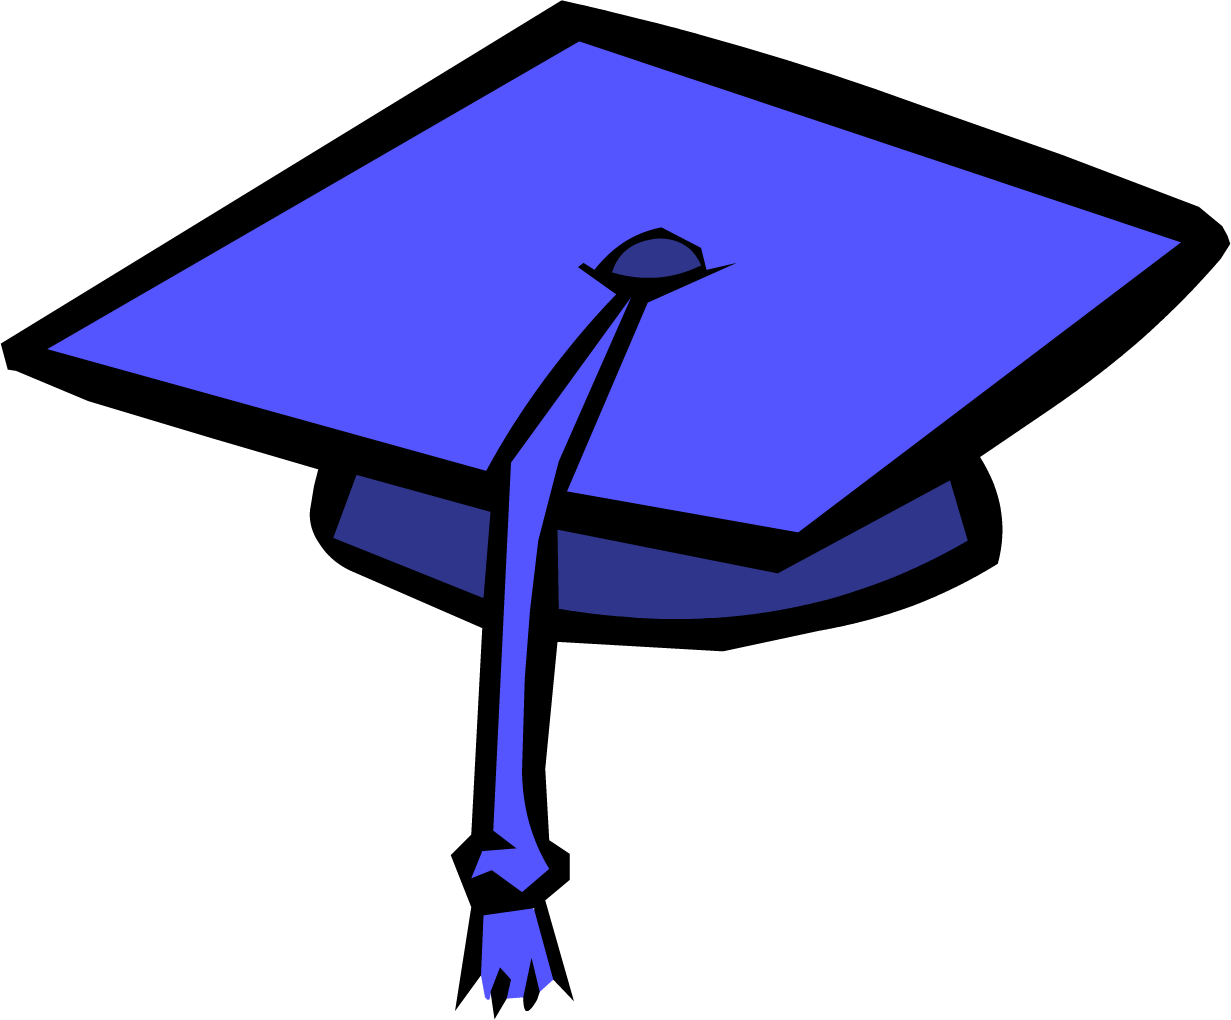 Green and blue clipart of grad caps clip freeuse download Free Graduation Hat Png, Download Free Clip Art, Free Clip Art on ... clip freeuse download